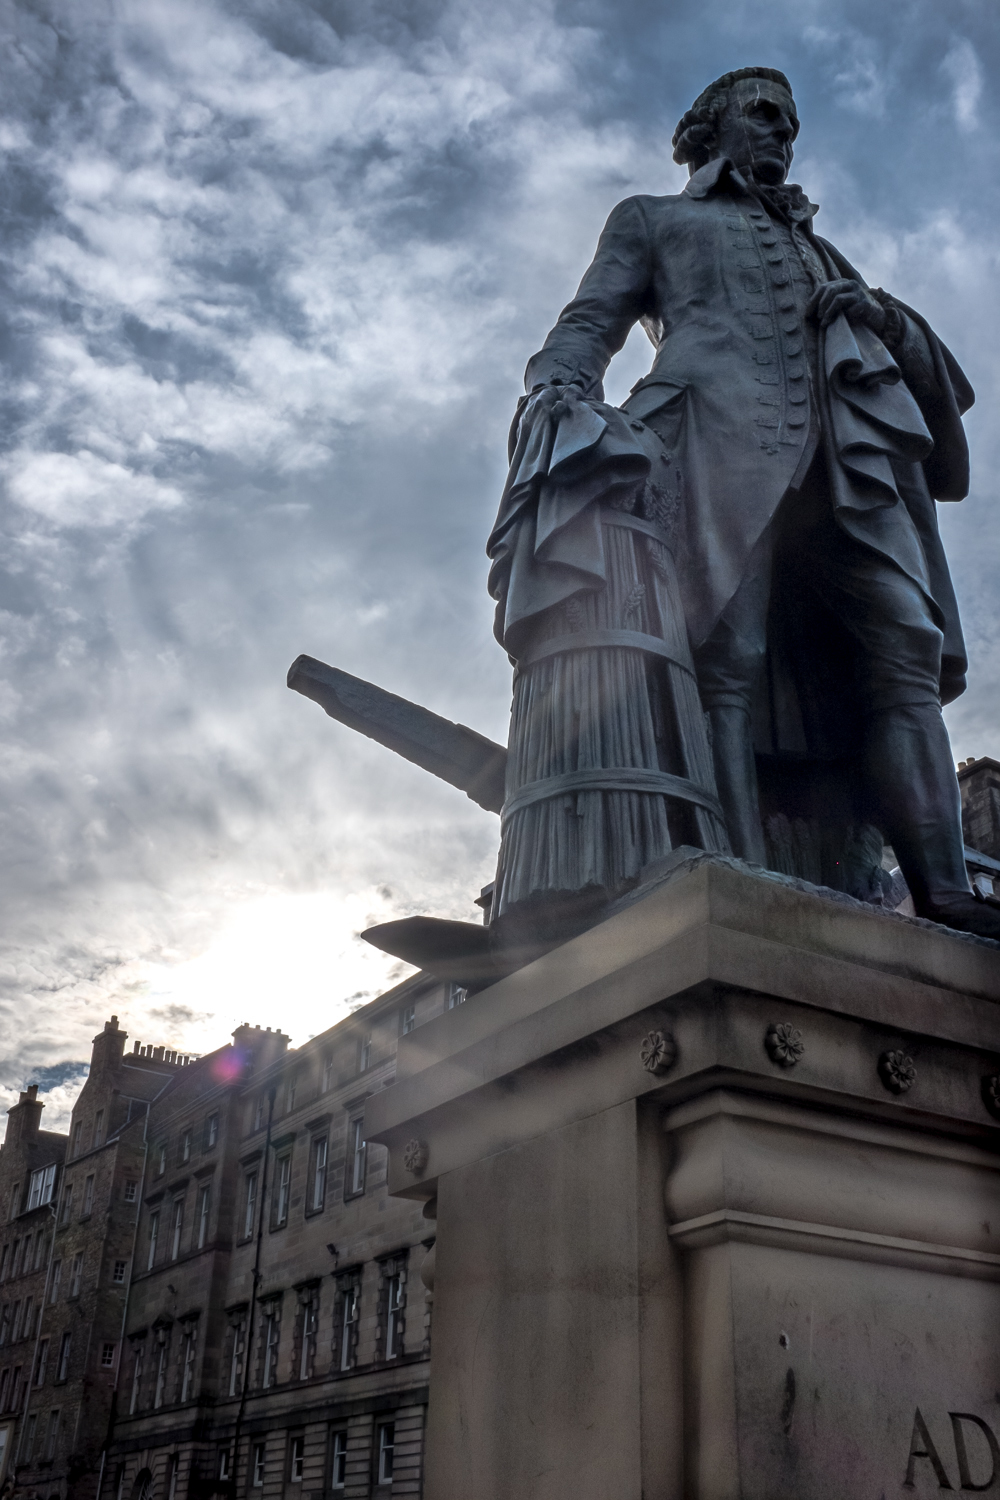 Adam Smith statue, outside of St. Giles' Cathedral